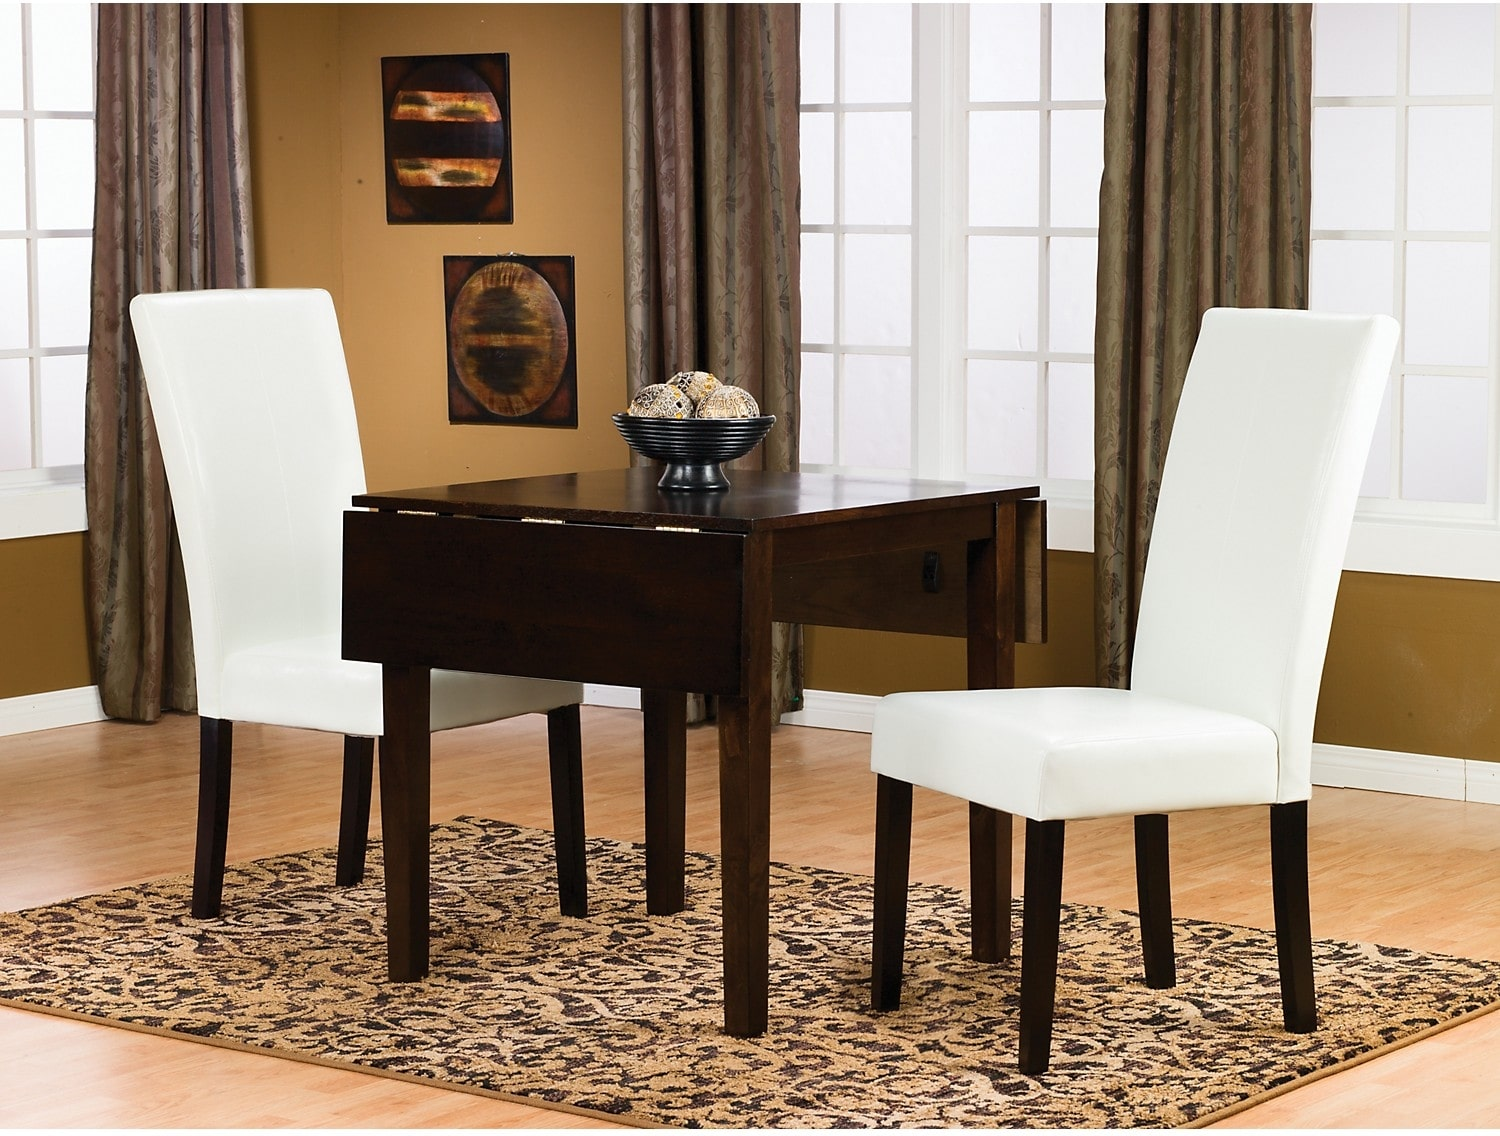 Dining Room Furniture - Dakota 3-Piece Square Table Dining Package w/ White Chairs